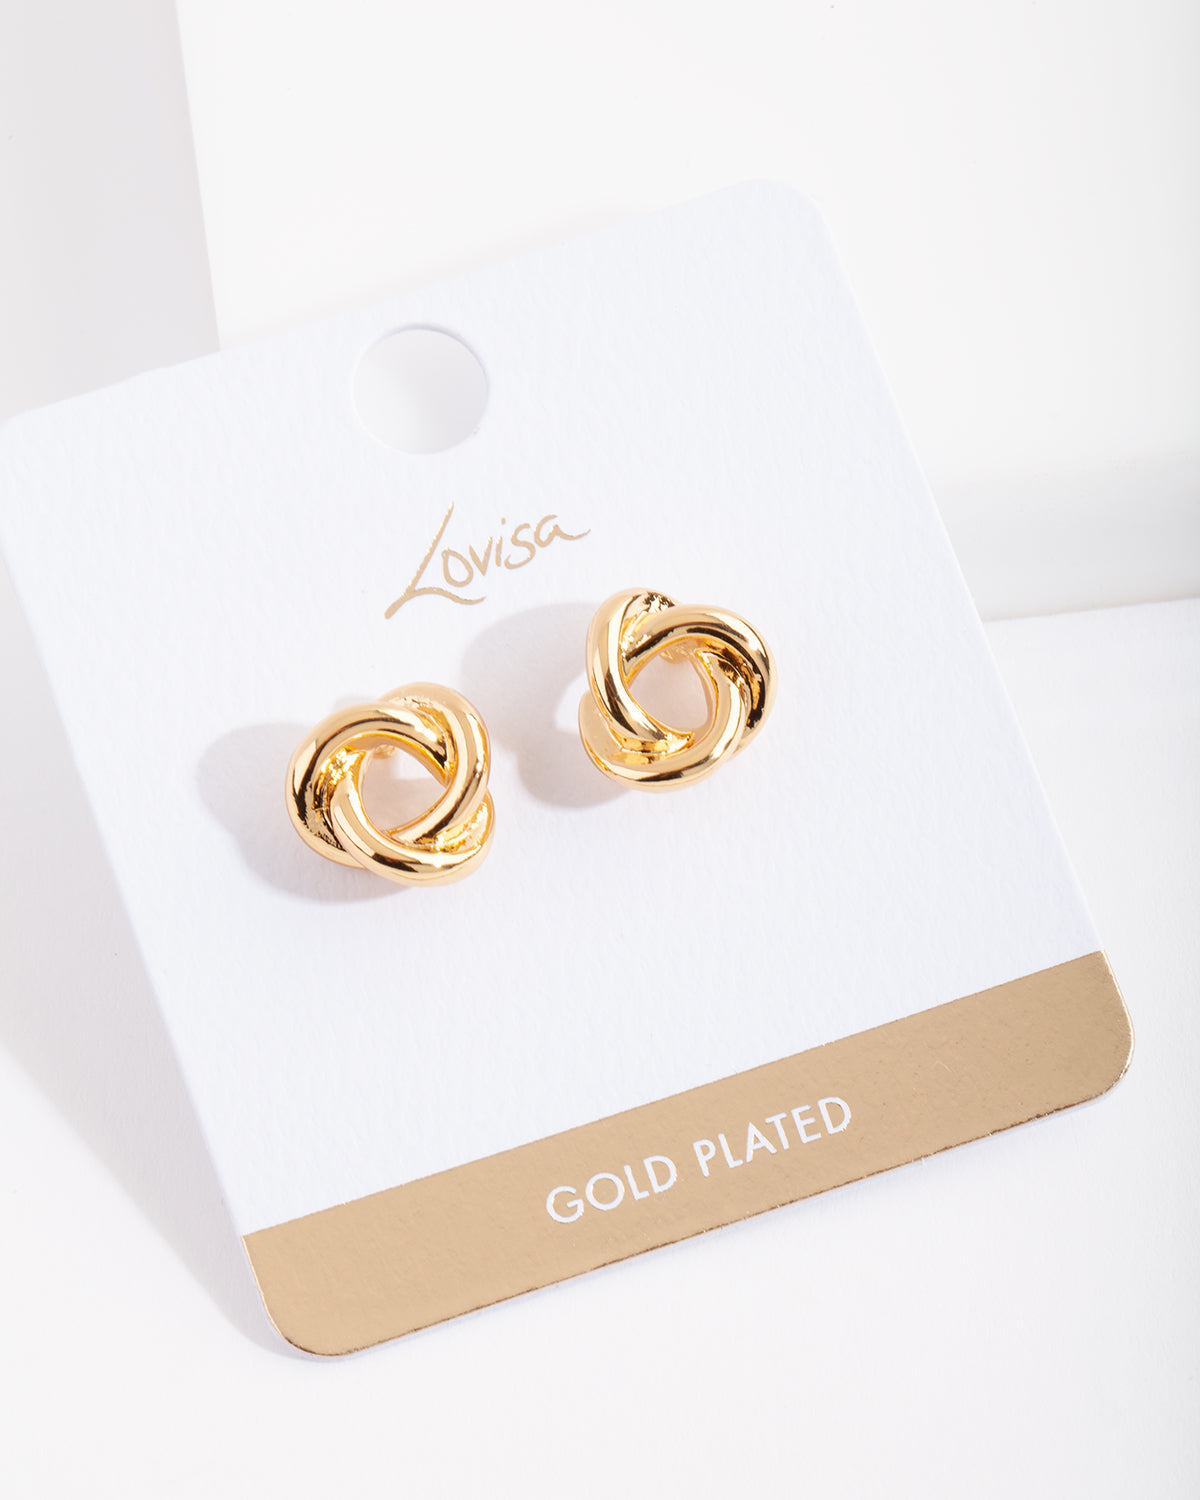 Real Gold Plated Knot Stud Earring